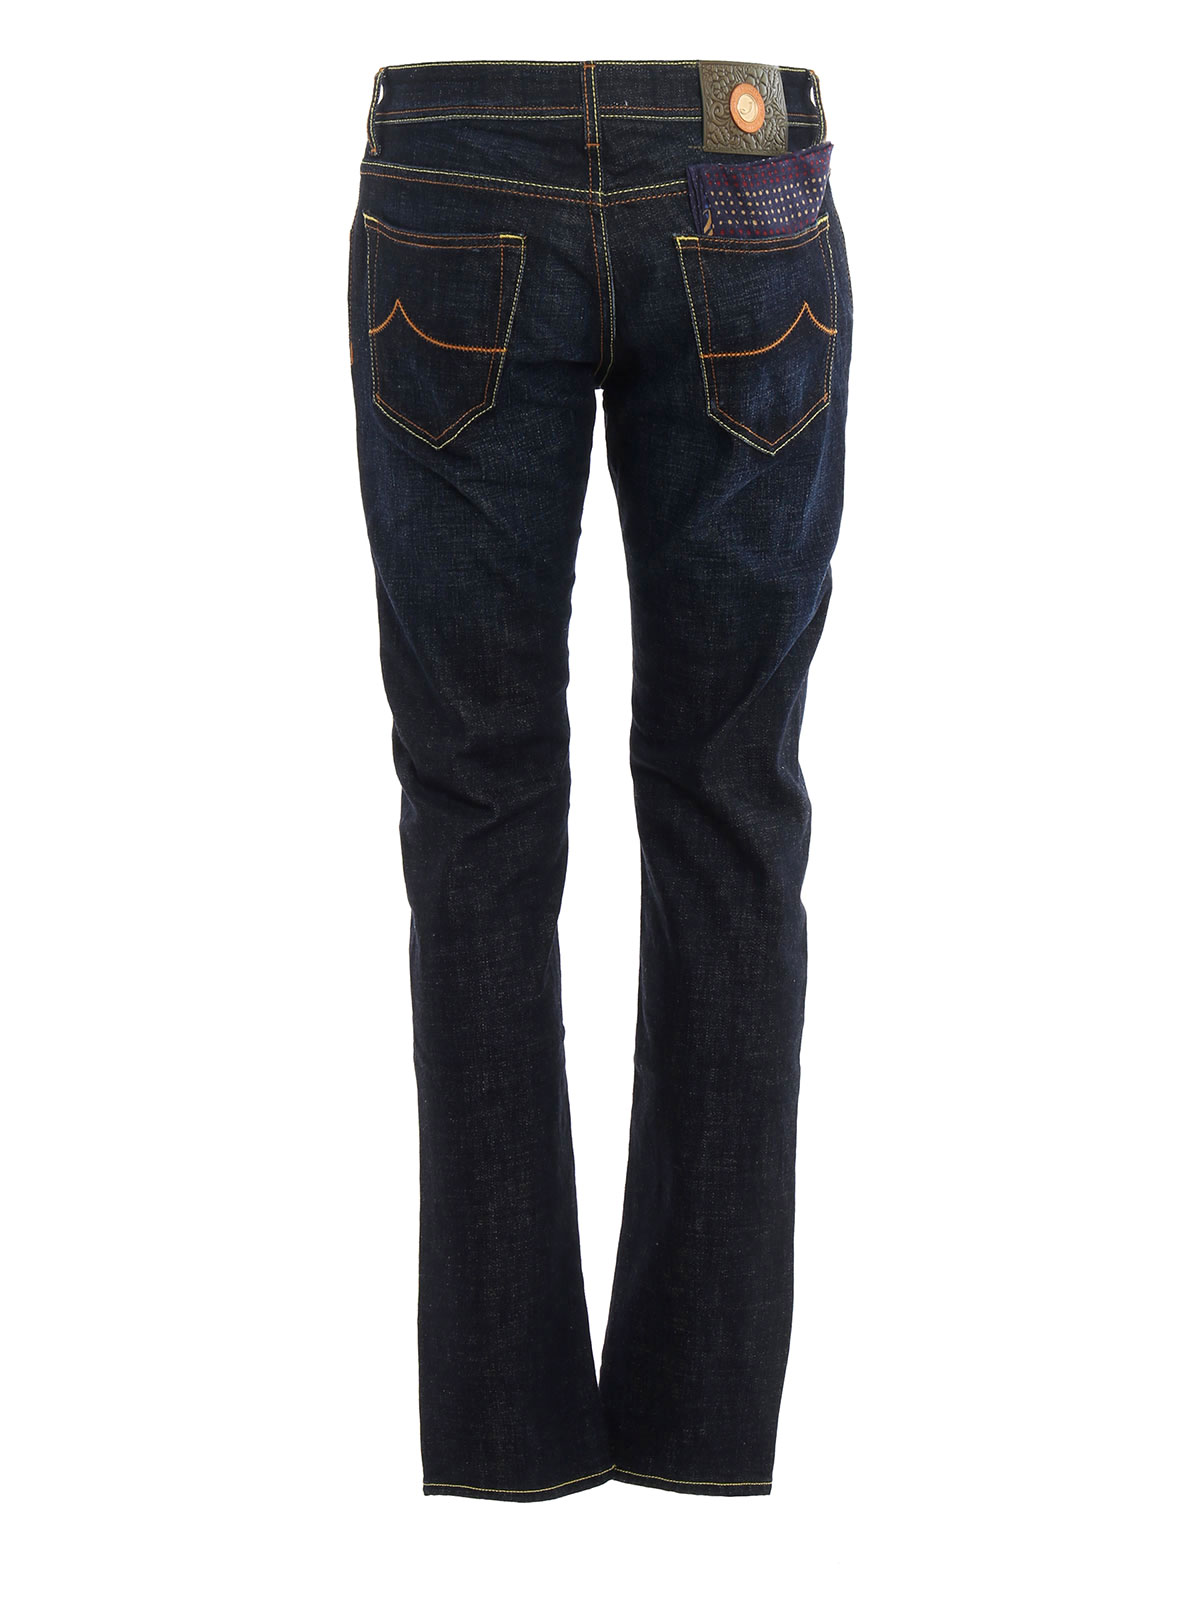 Immagine di JACOB COHEN | Jeans Uomo Style 622 Coin Patch